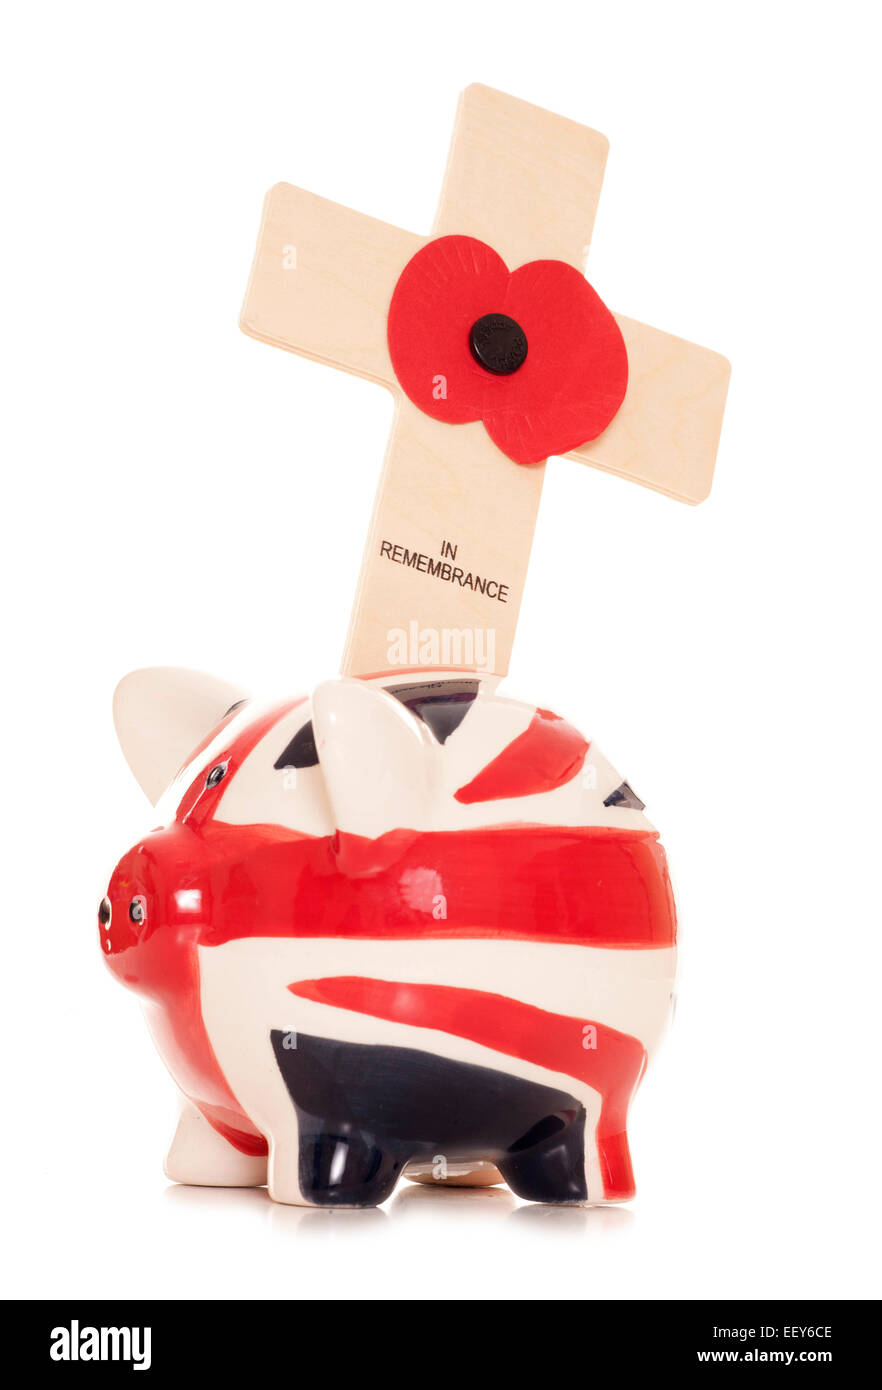 Giving money on remembrance day cutout - Stock Image